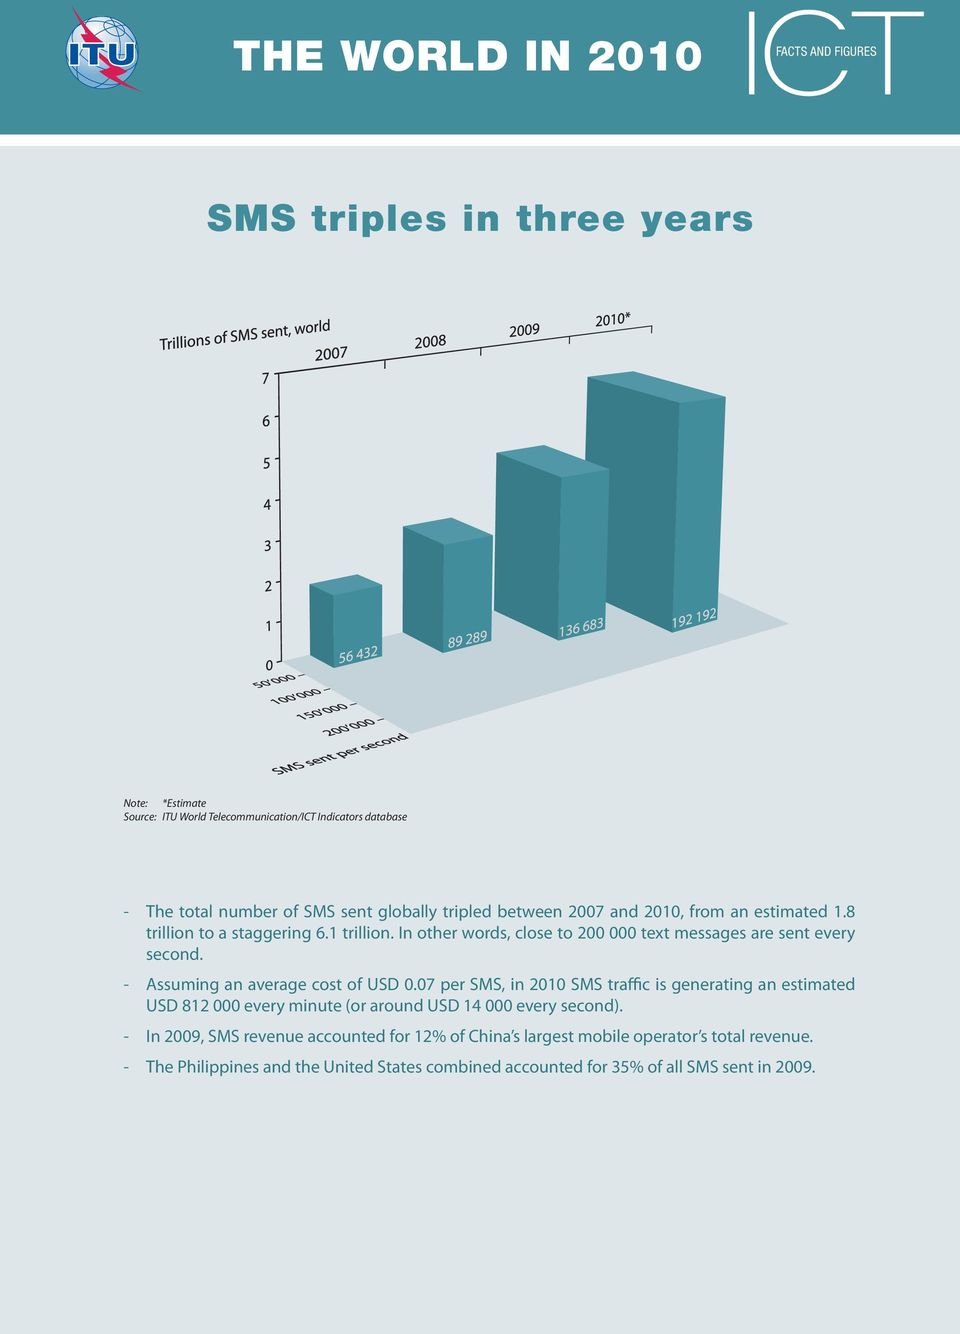 7 per SMS, in 21 SMS traffic is generating an estimated USD 812 every minute (or around USD 14 every second).